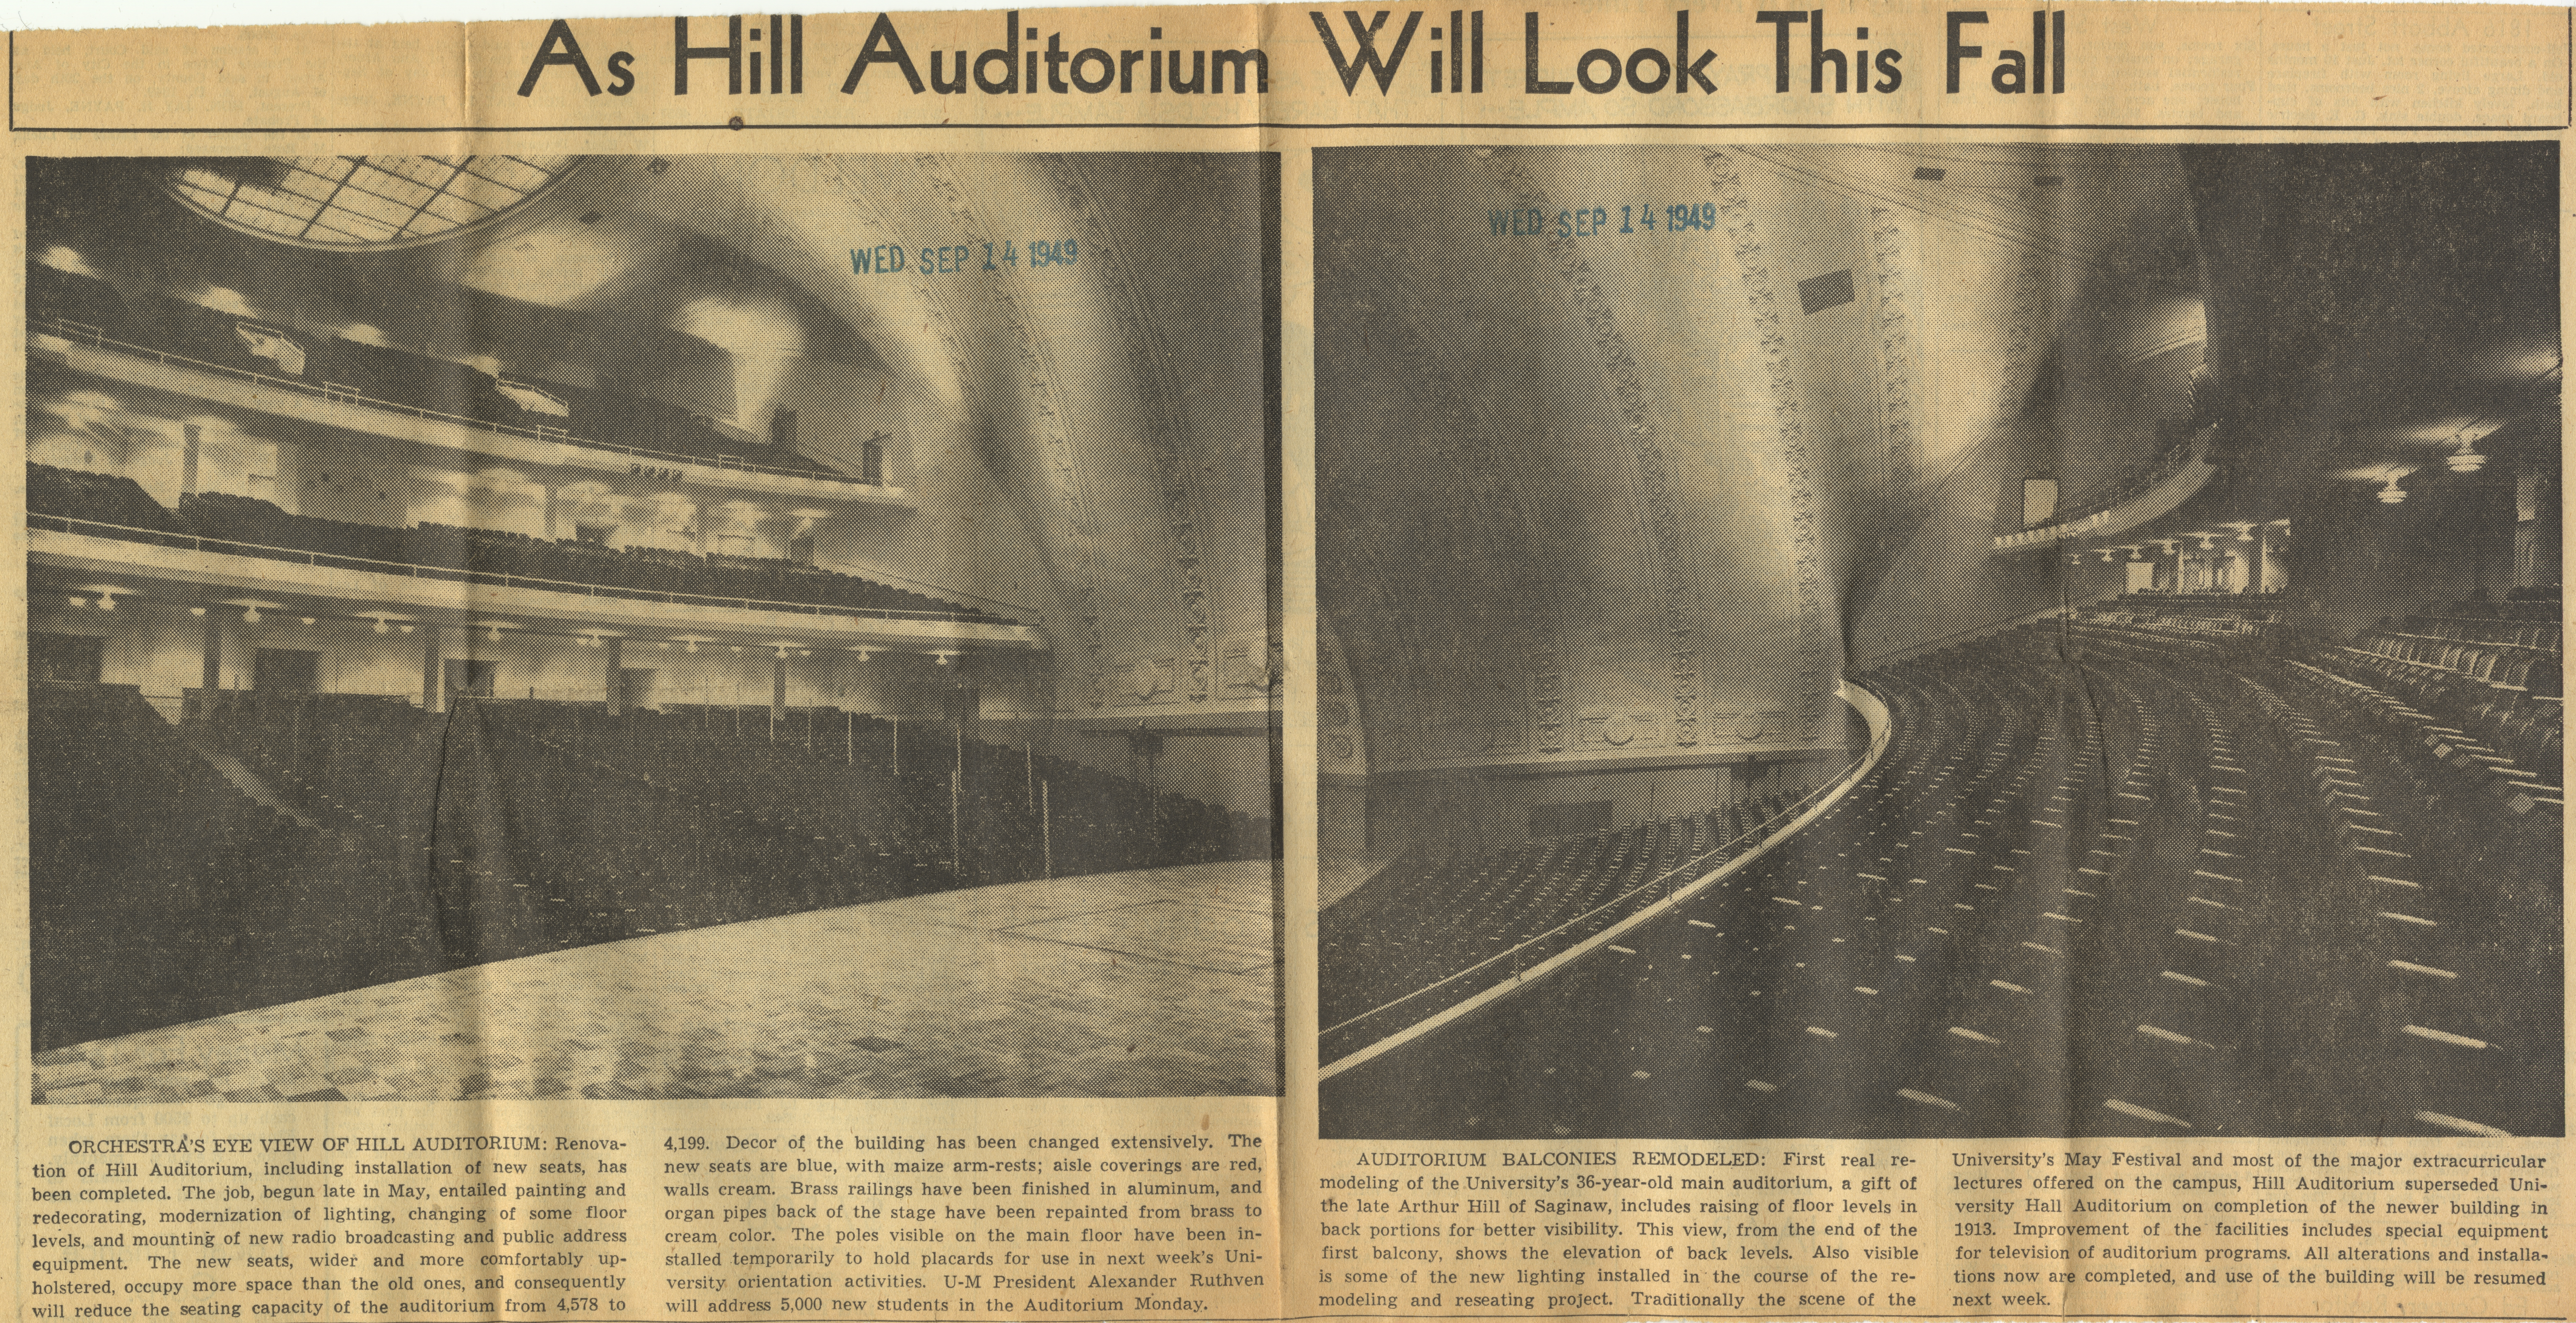 As Hill Auditorium Will Look This Fall image